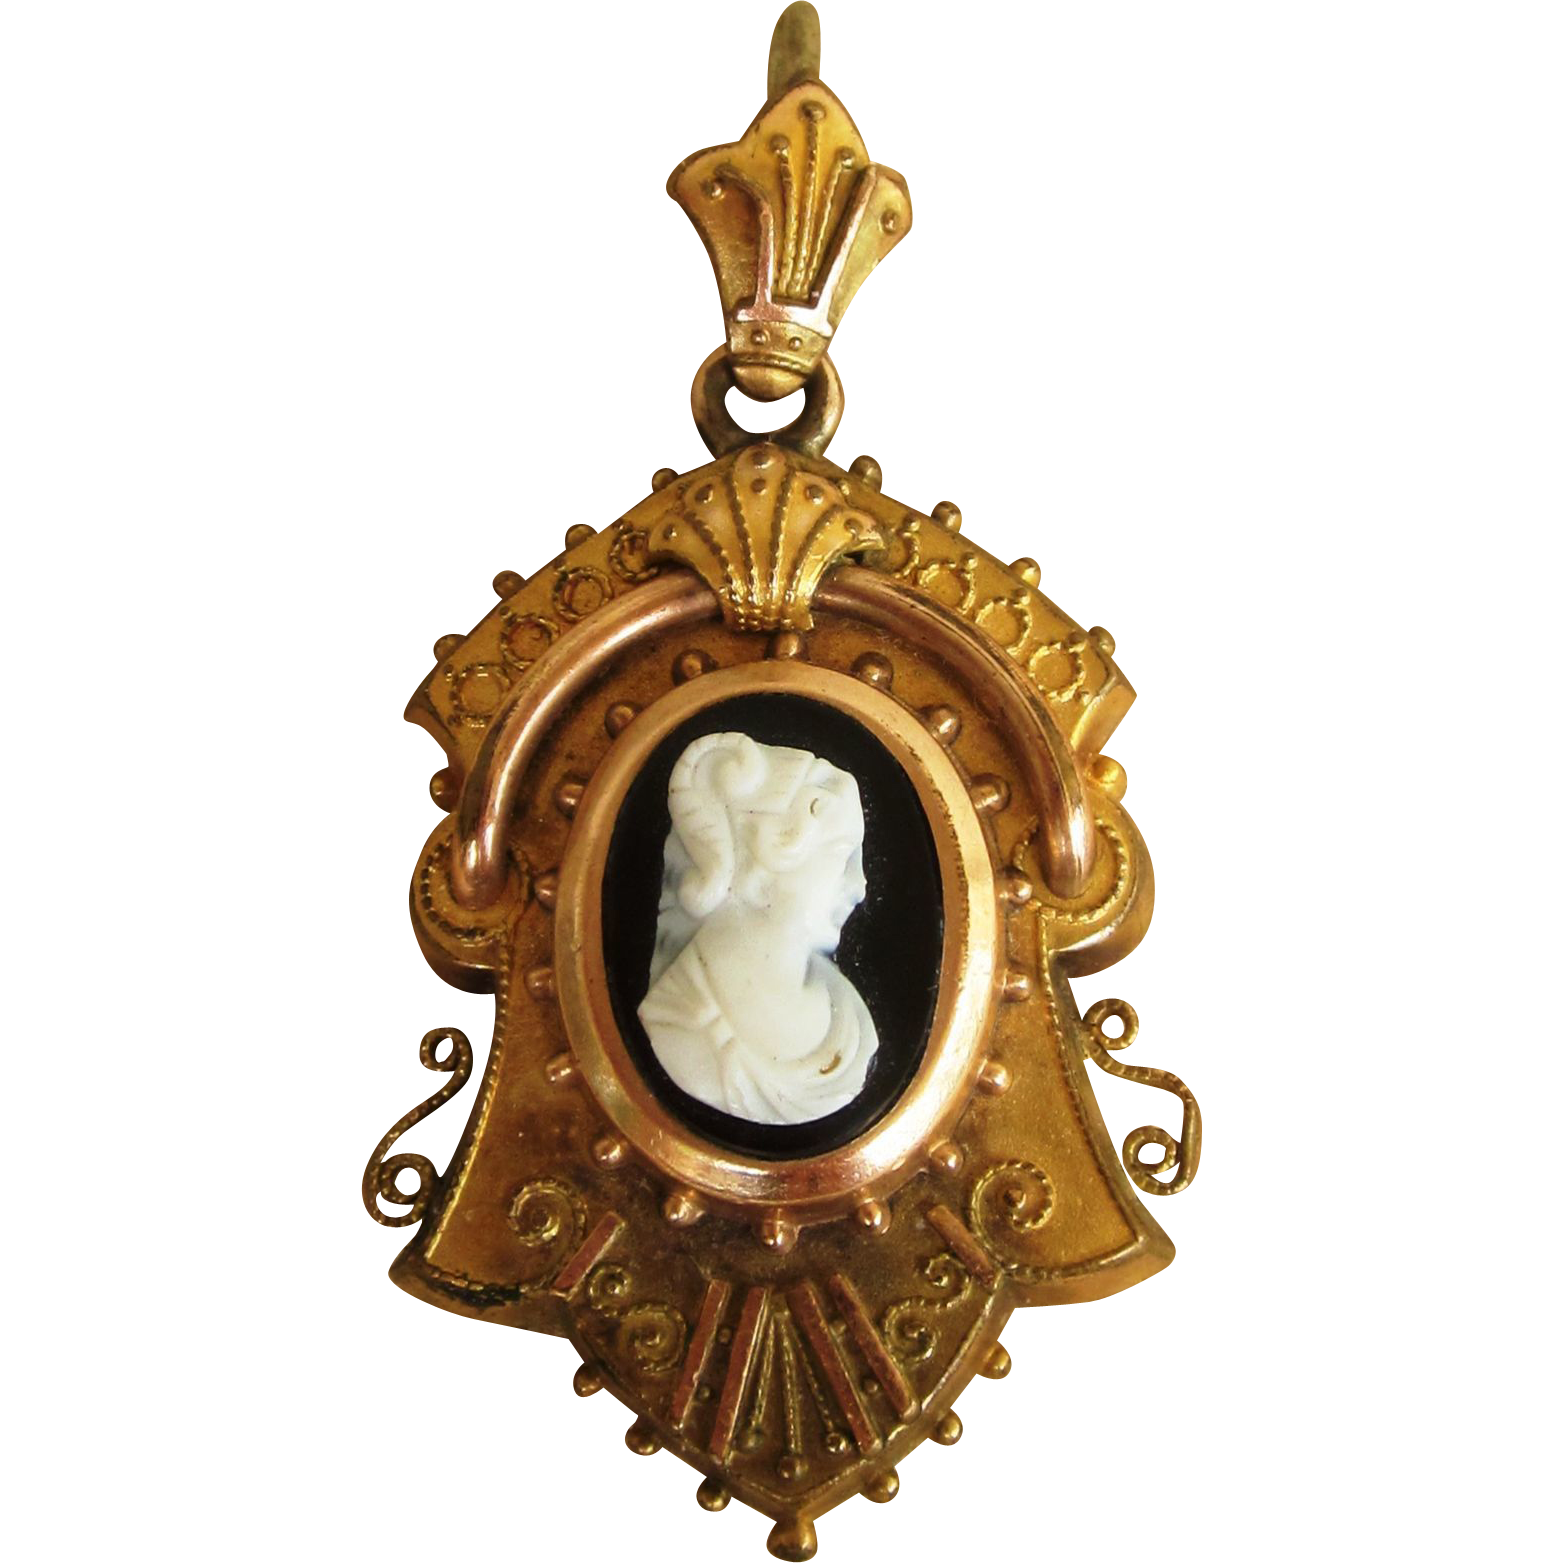 Victorian Cameo Large Locket or Hair locket Ornate Antique Pendant